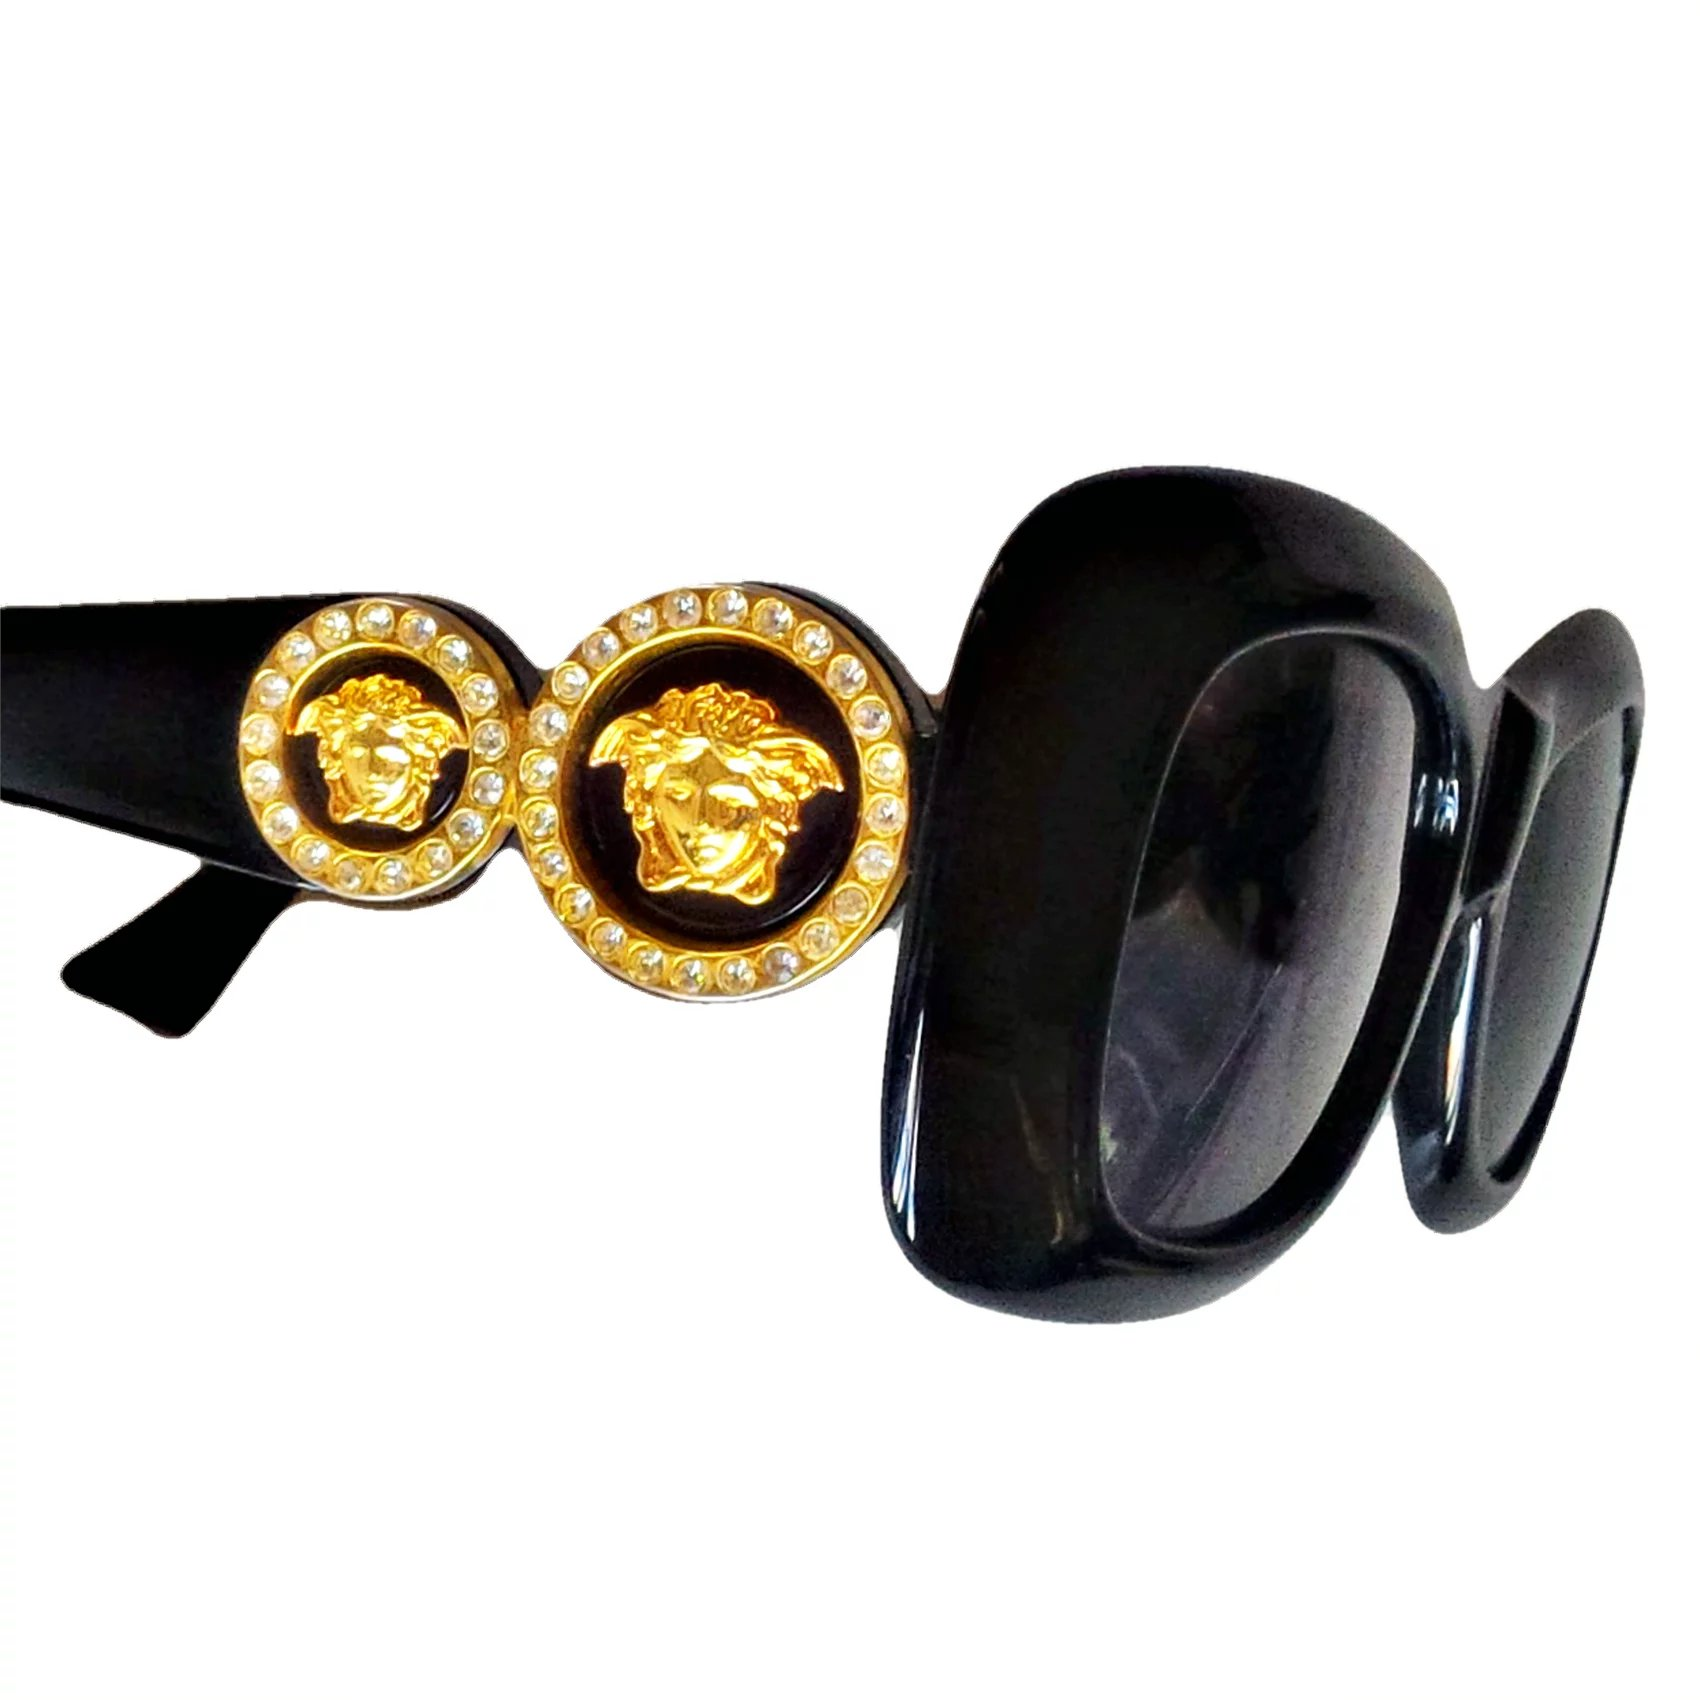 eadafc8ed6d03 Gianni Versace 417 C Black Sunglasses Double Gold Medusa Rectangular Col.852  18 KT. Click to expand